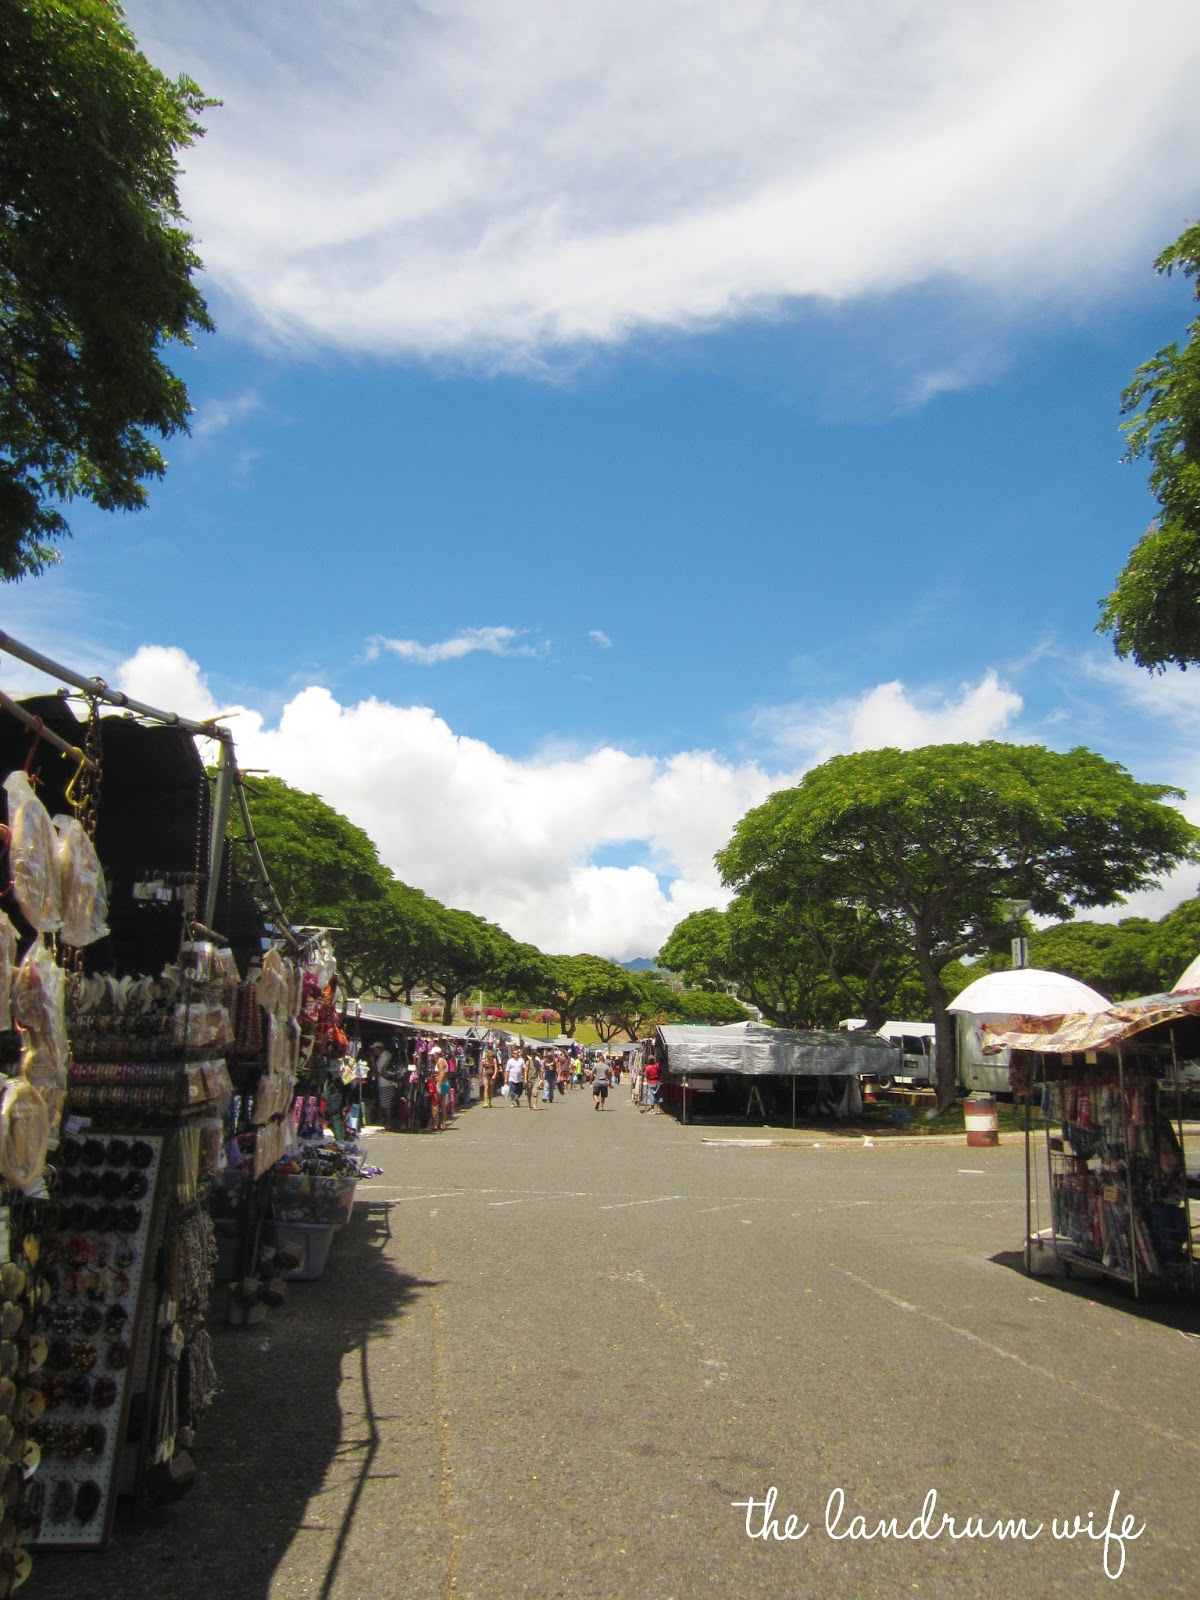 And Drink the Wild Air: Getting to Know Hawaii: Aloha